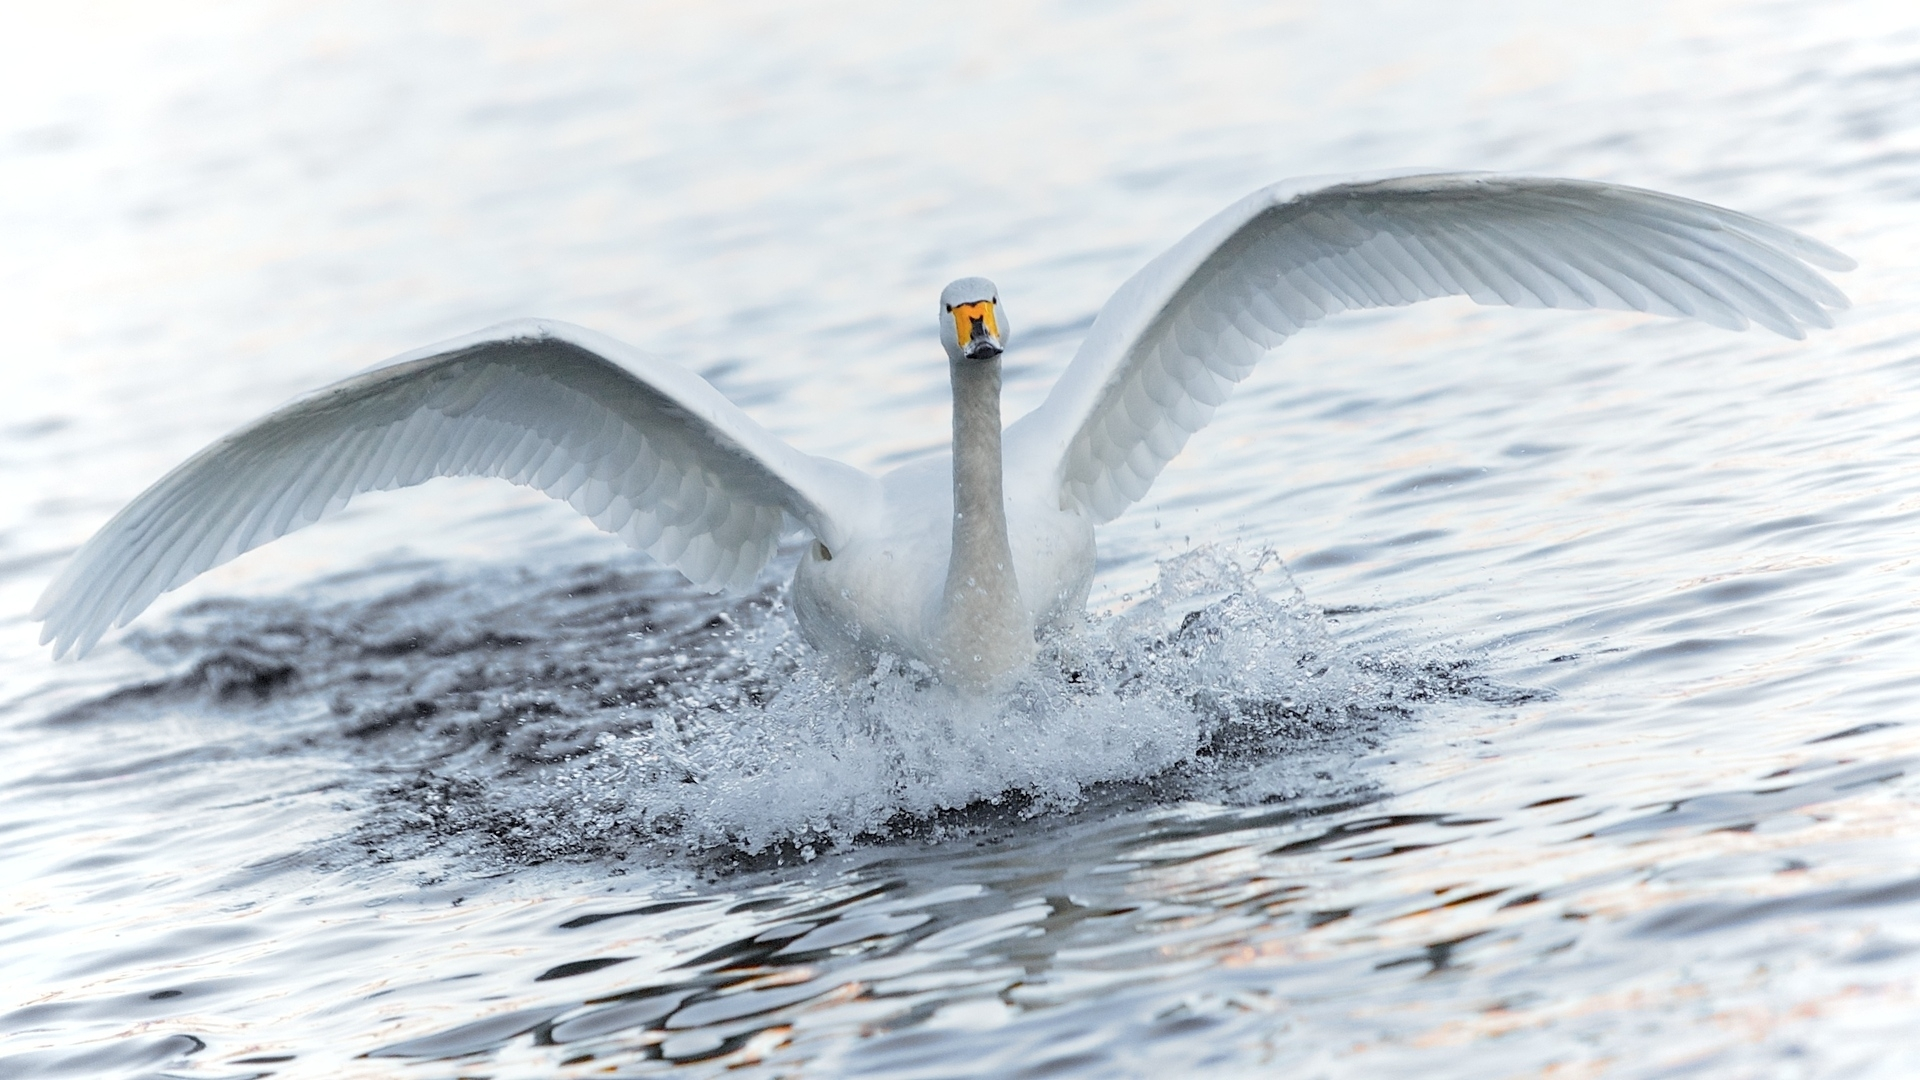 39401 download wallpaper Animals, Birds, Swans screensavers and pictures for free